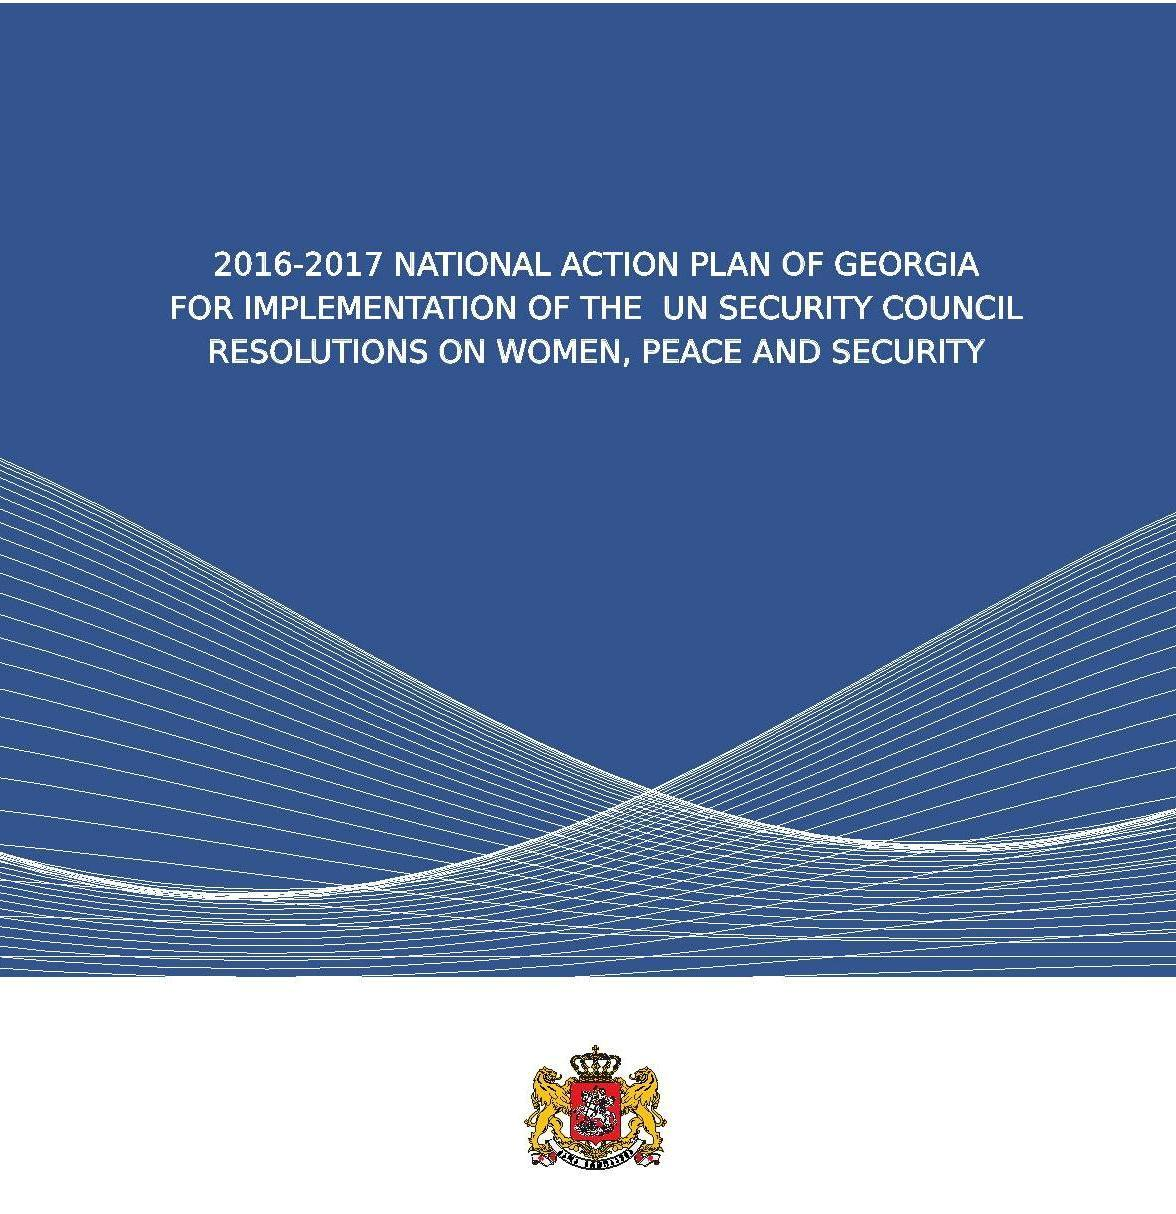 2016-2017 National Action Plan of Georgia for Implementation of the UN Security Council Resolutions on Women, Peace and Security